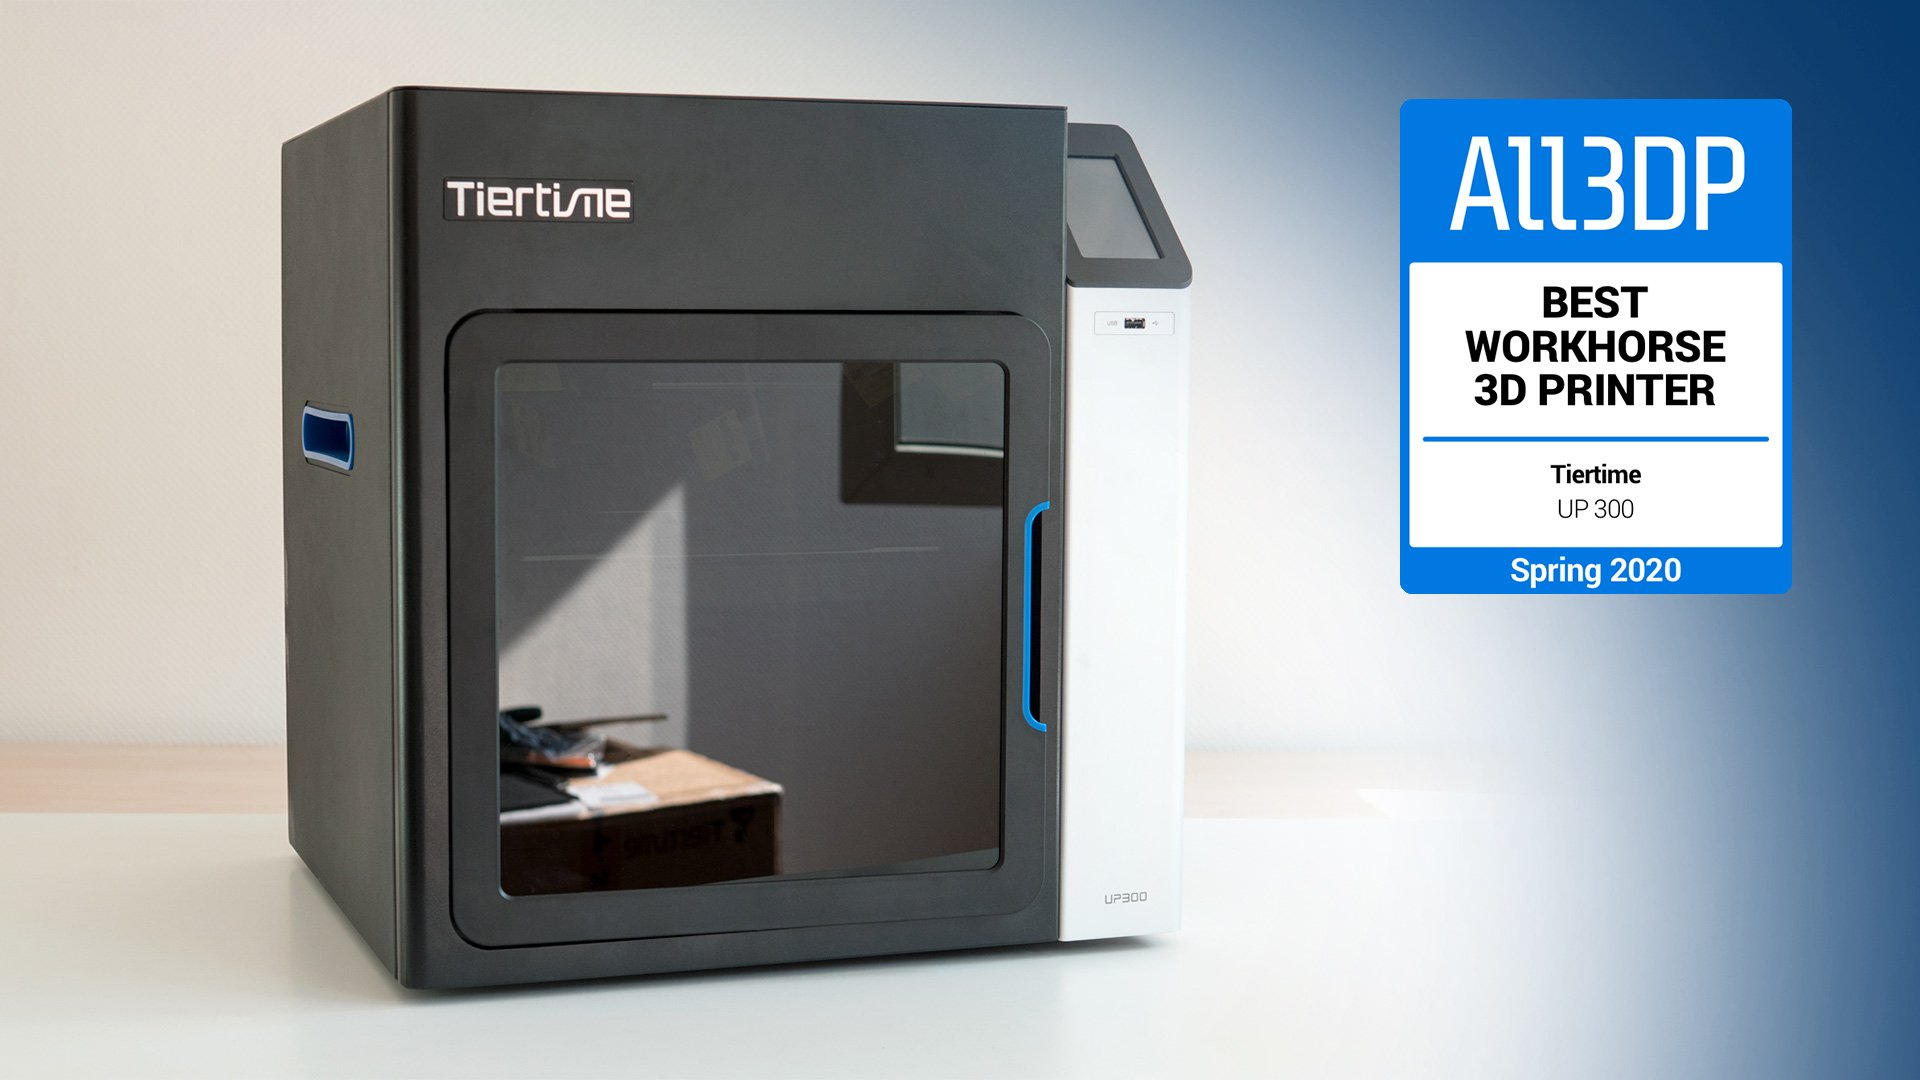 Tiertime UP300 Review: Best Workhorse 3D Printer 2020 | All3DP